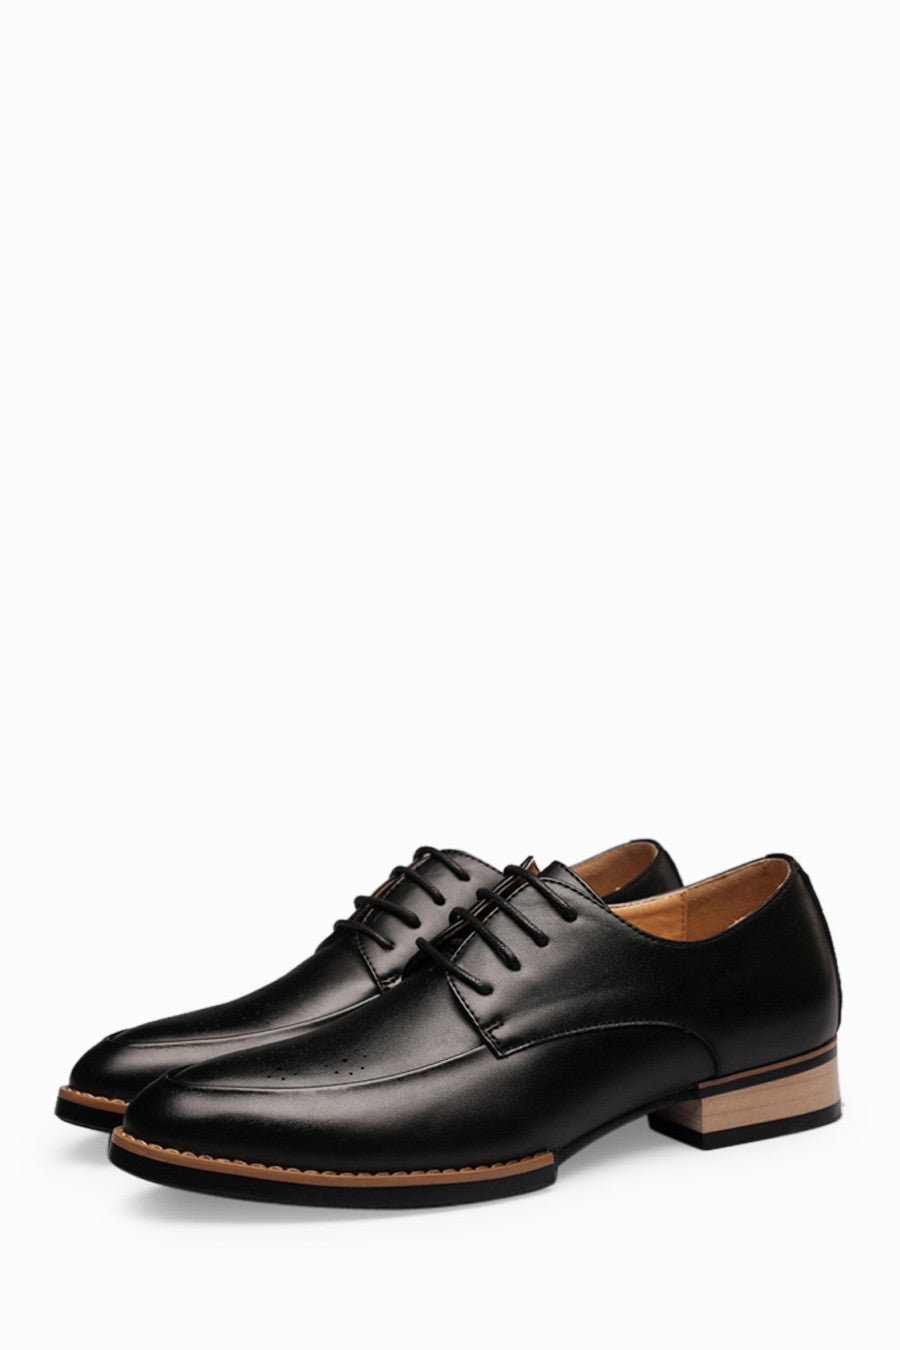 Brogue Men's Dress Shoes In Black